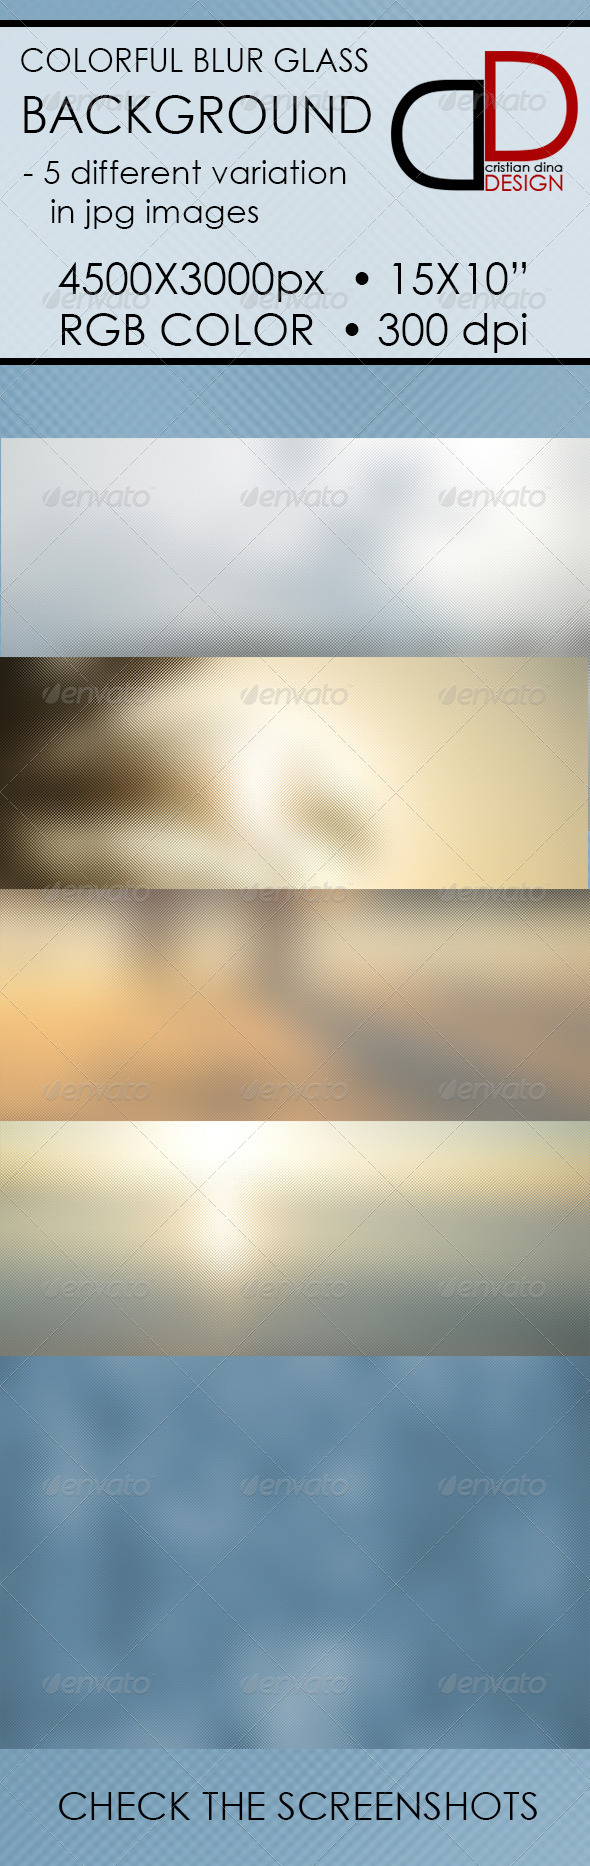 Colorful Blur Glass Background - Backgrounds Graphics